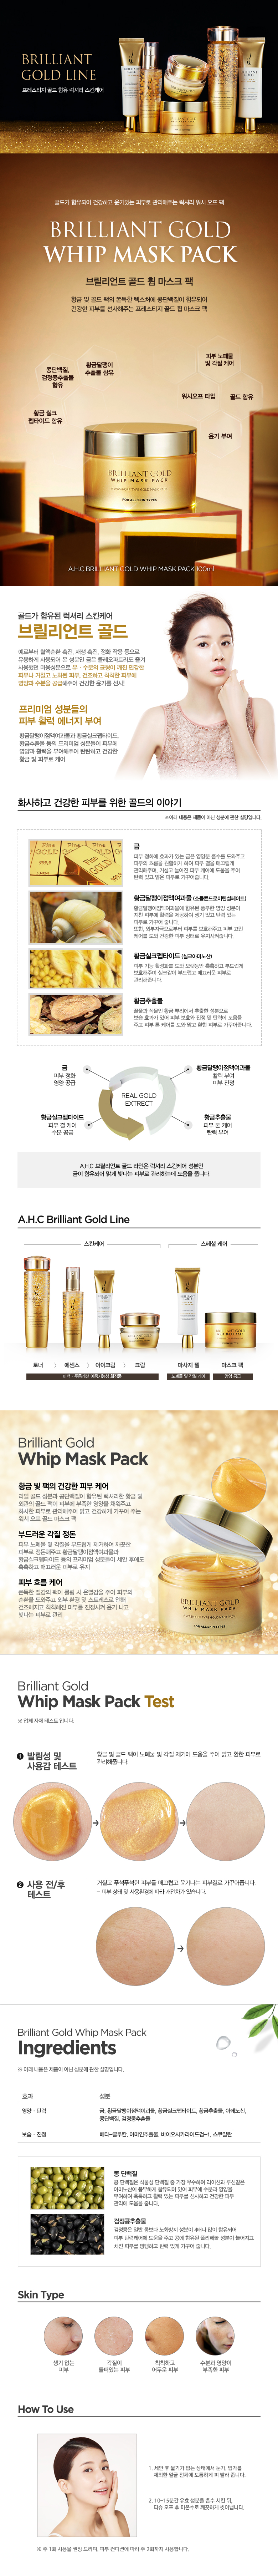 AHC Brilliant Gold Whip Mask Pack 100ml malaysia singapore indonesia